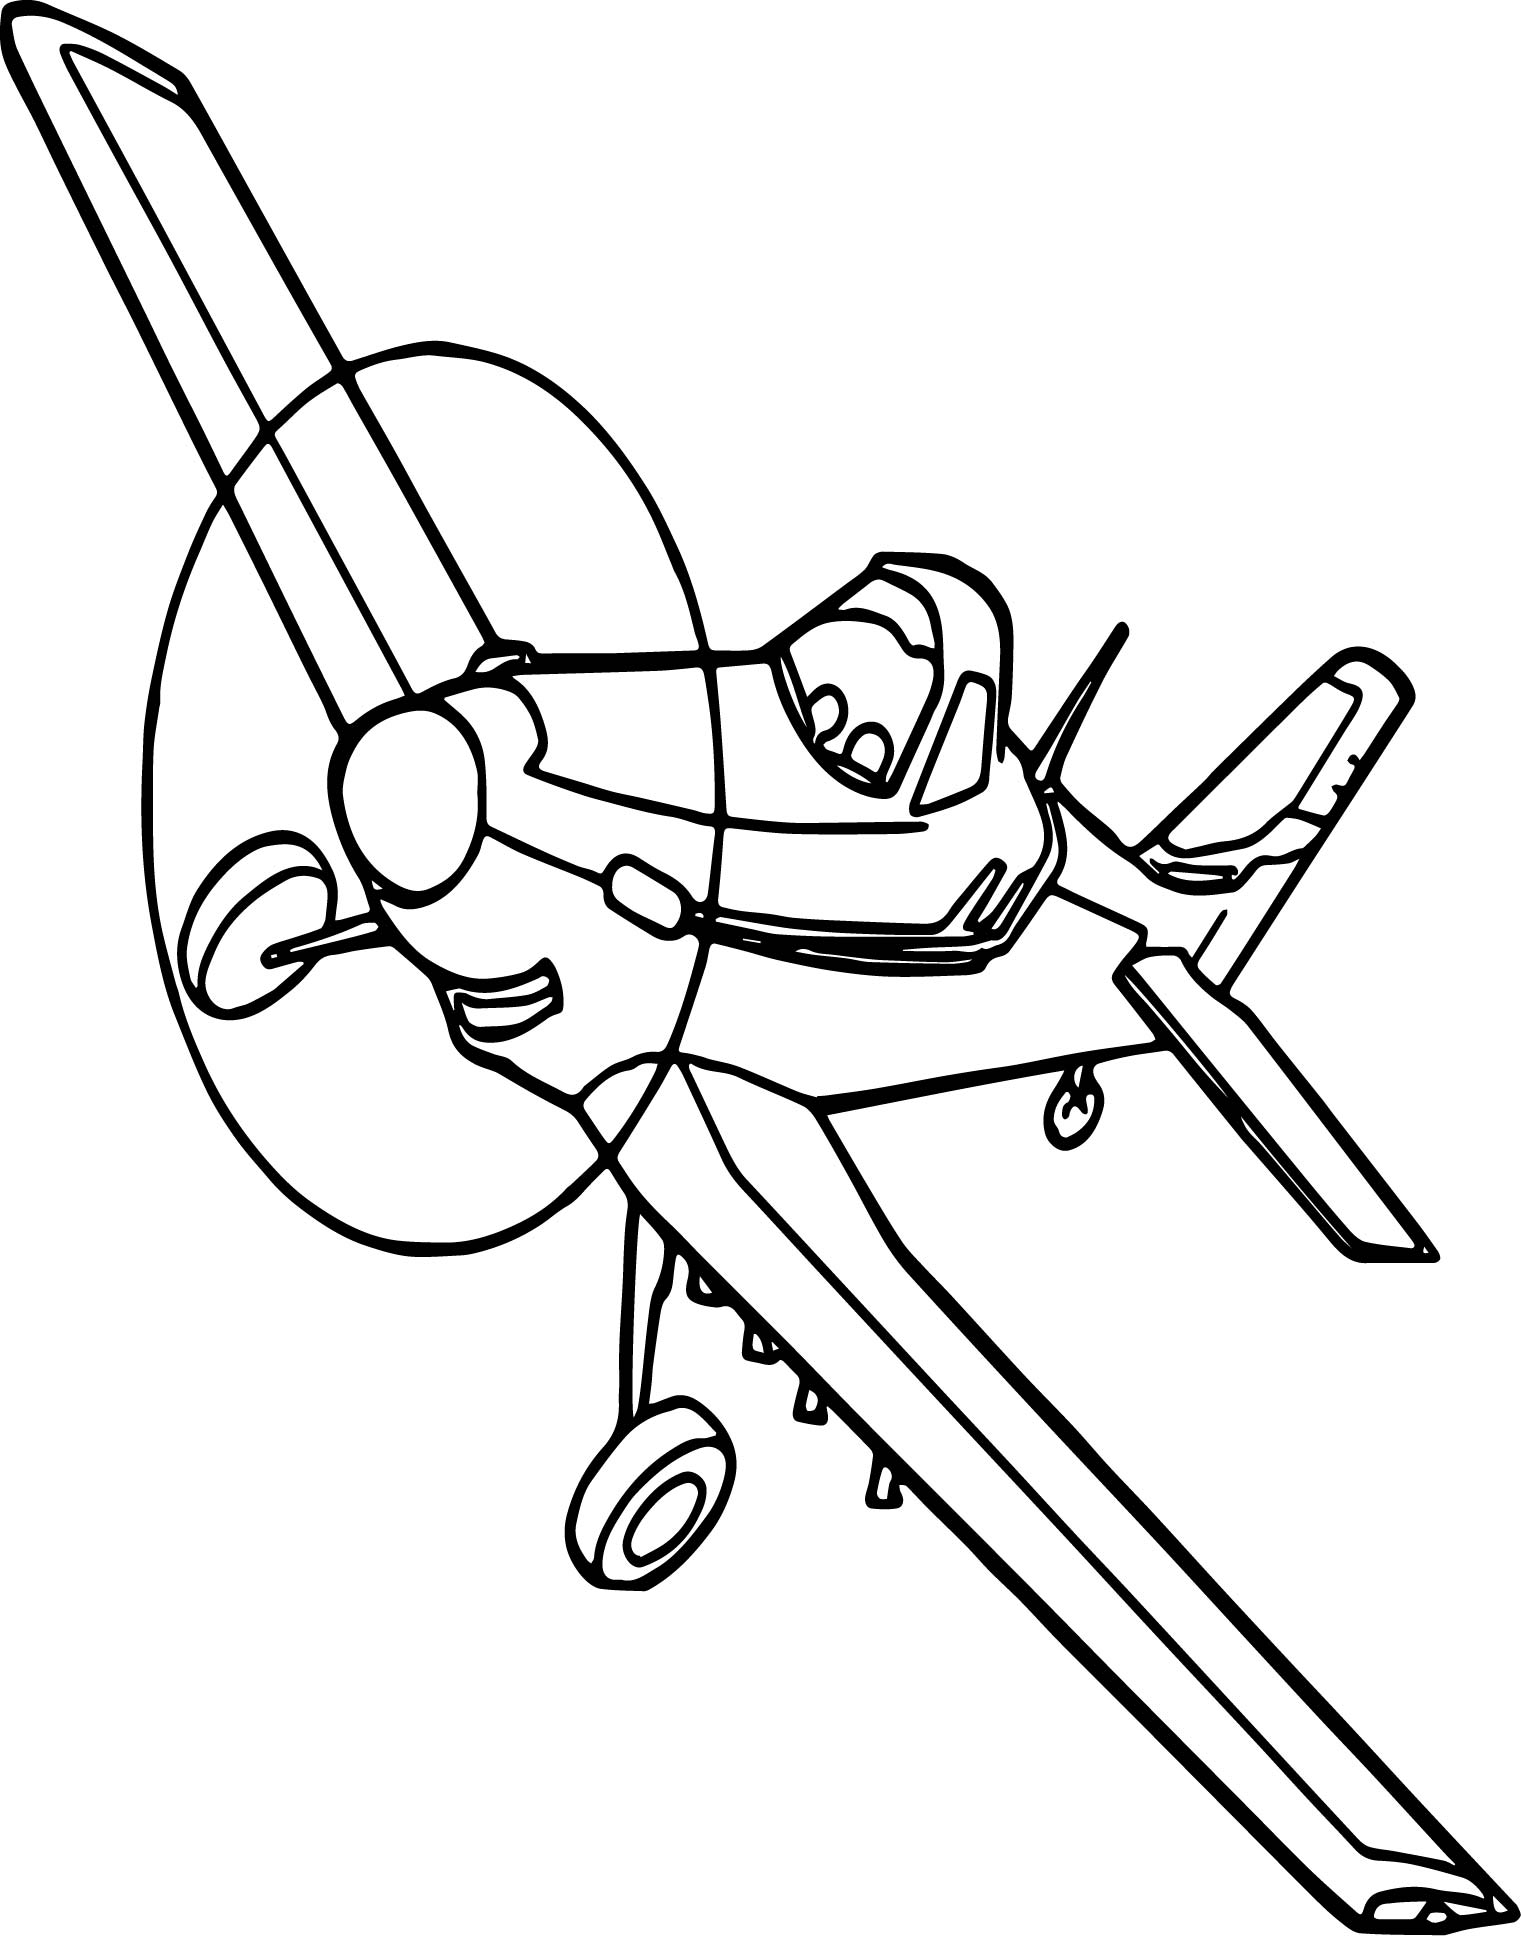 3300x2550 Disney39s Planes Coloring Pages Sheet Free Disney Printable 1521x1936 Dusty Plane Wecoloringpage